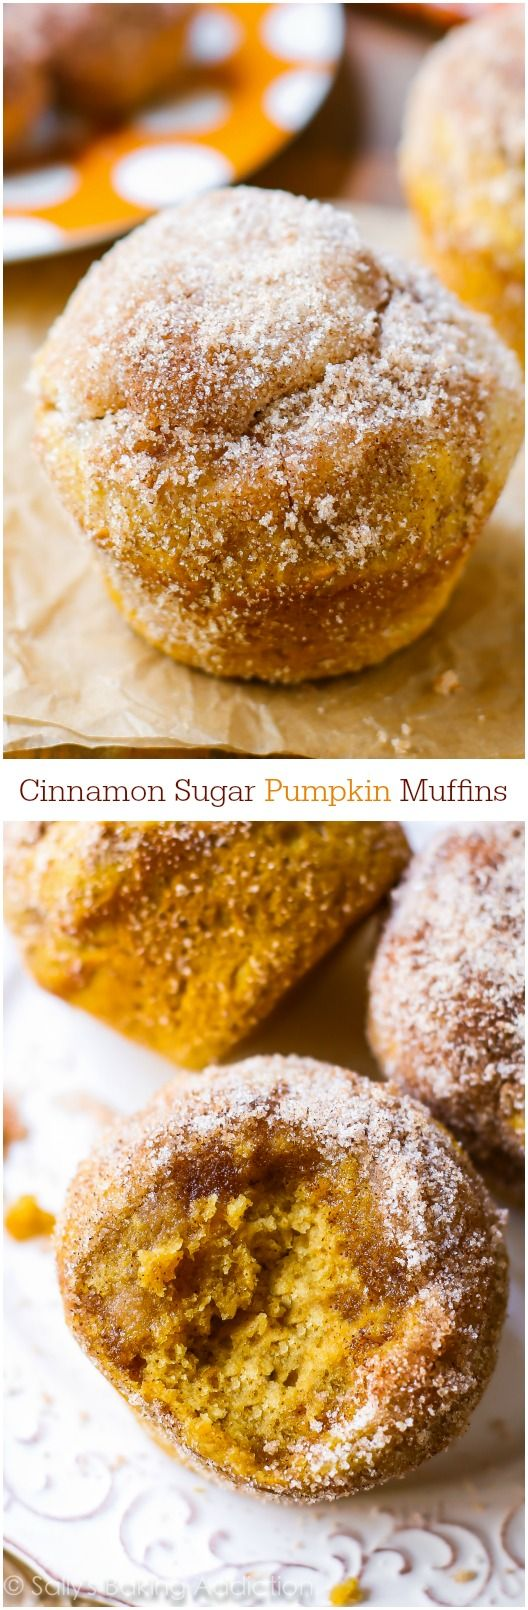 Love these bakery style Cinnamon-Sugar Pumpkin Muffins! I make this recipe year round.